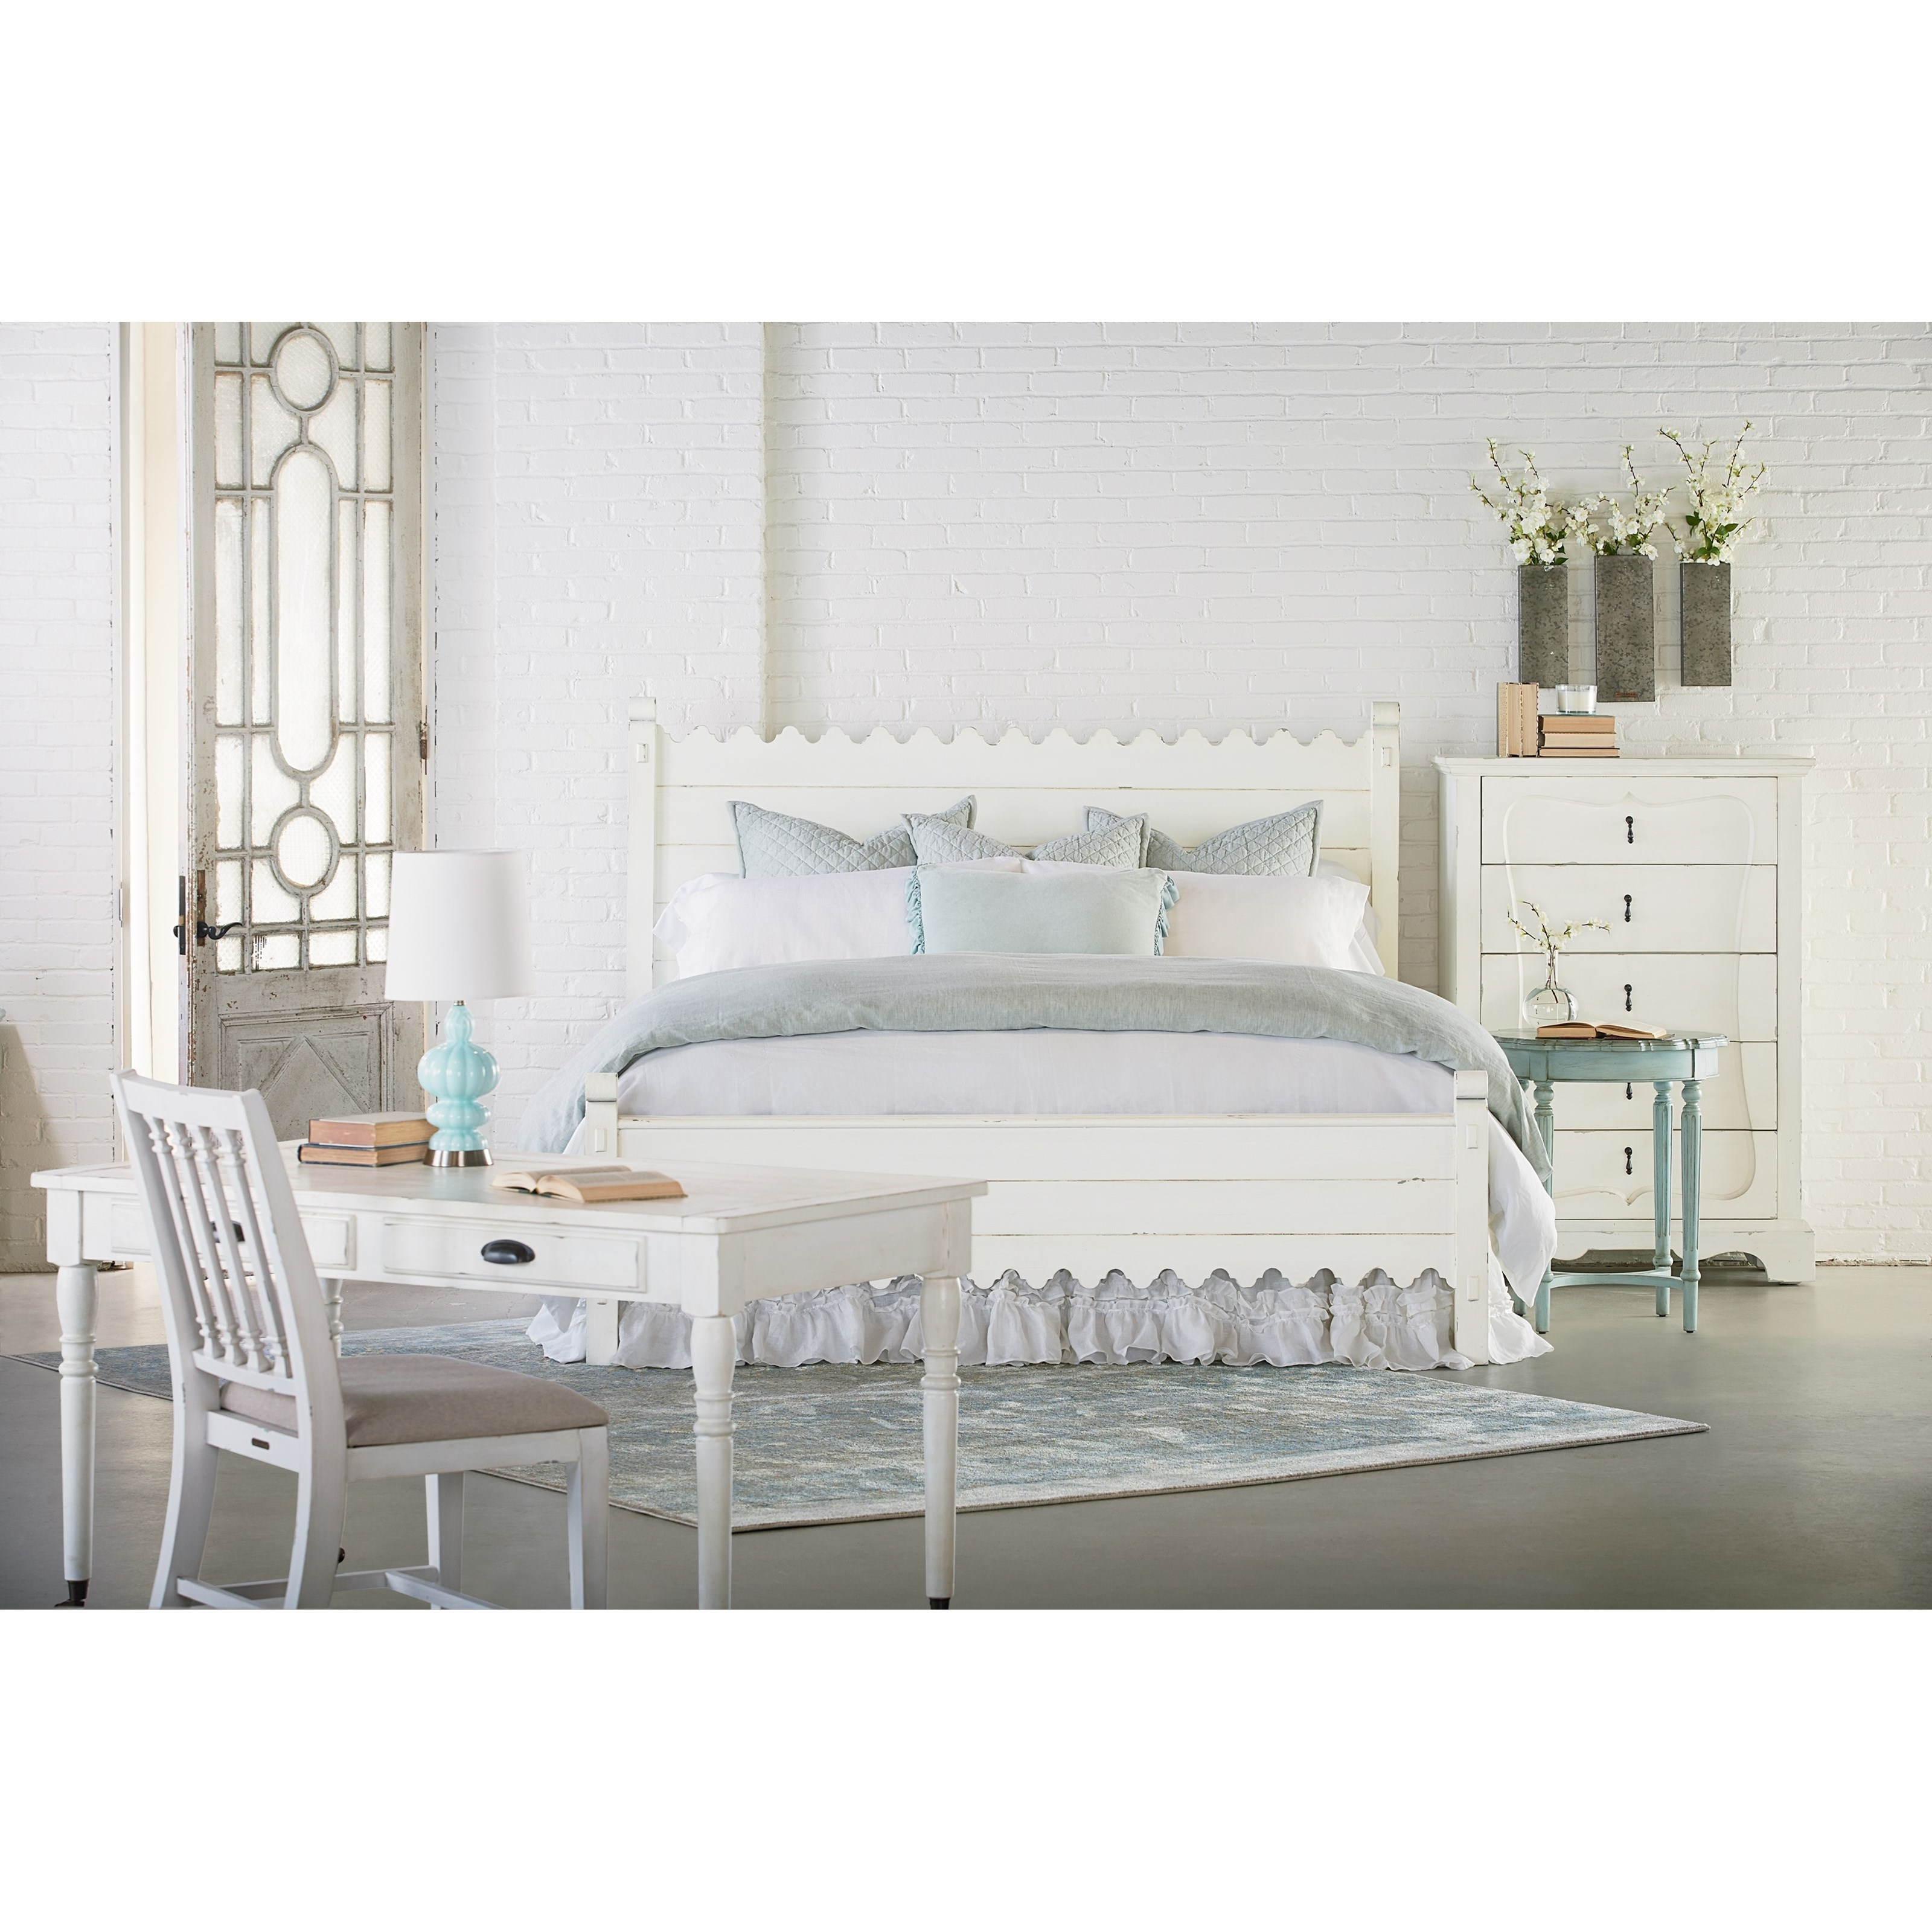 Trendy Magnolia Home Scallop Antique White Cocktail Tables Pertaining To Queen Bed With Scallop Trimmingmagnolia Homejoanna Gaines (View 18 of 20)